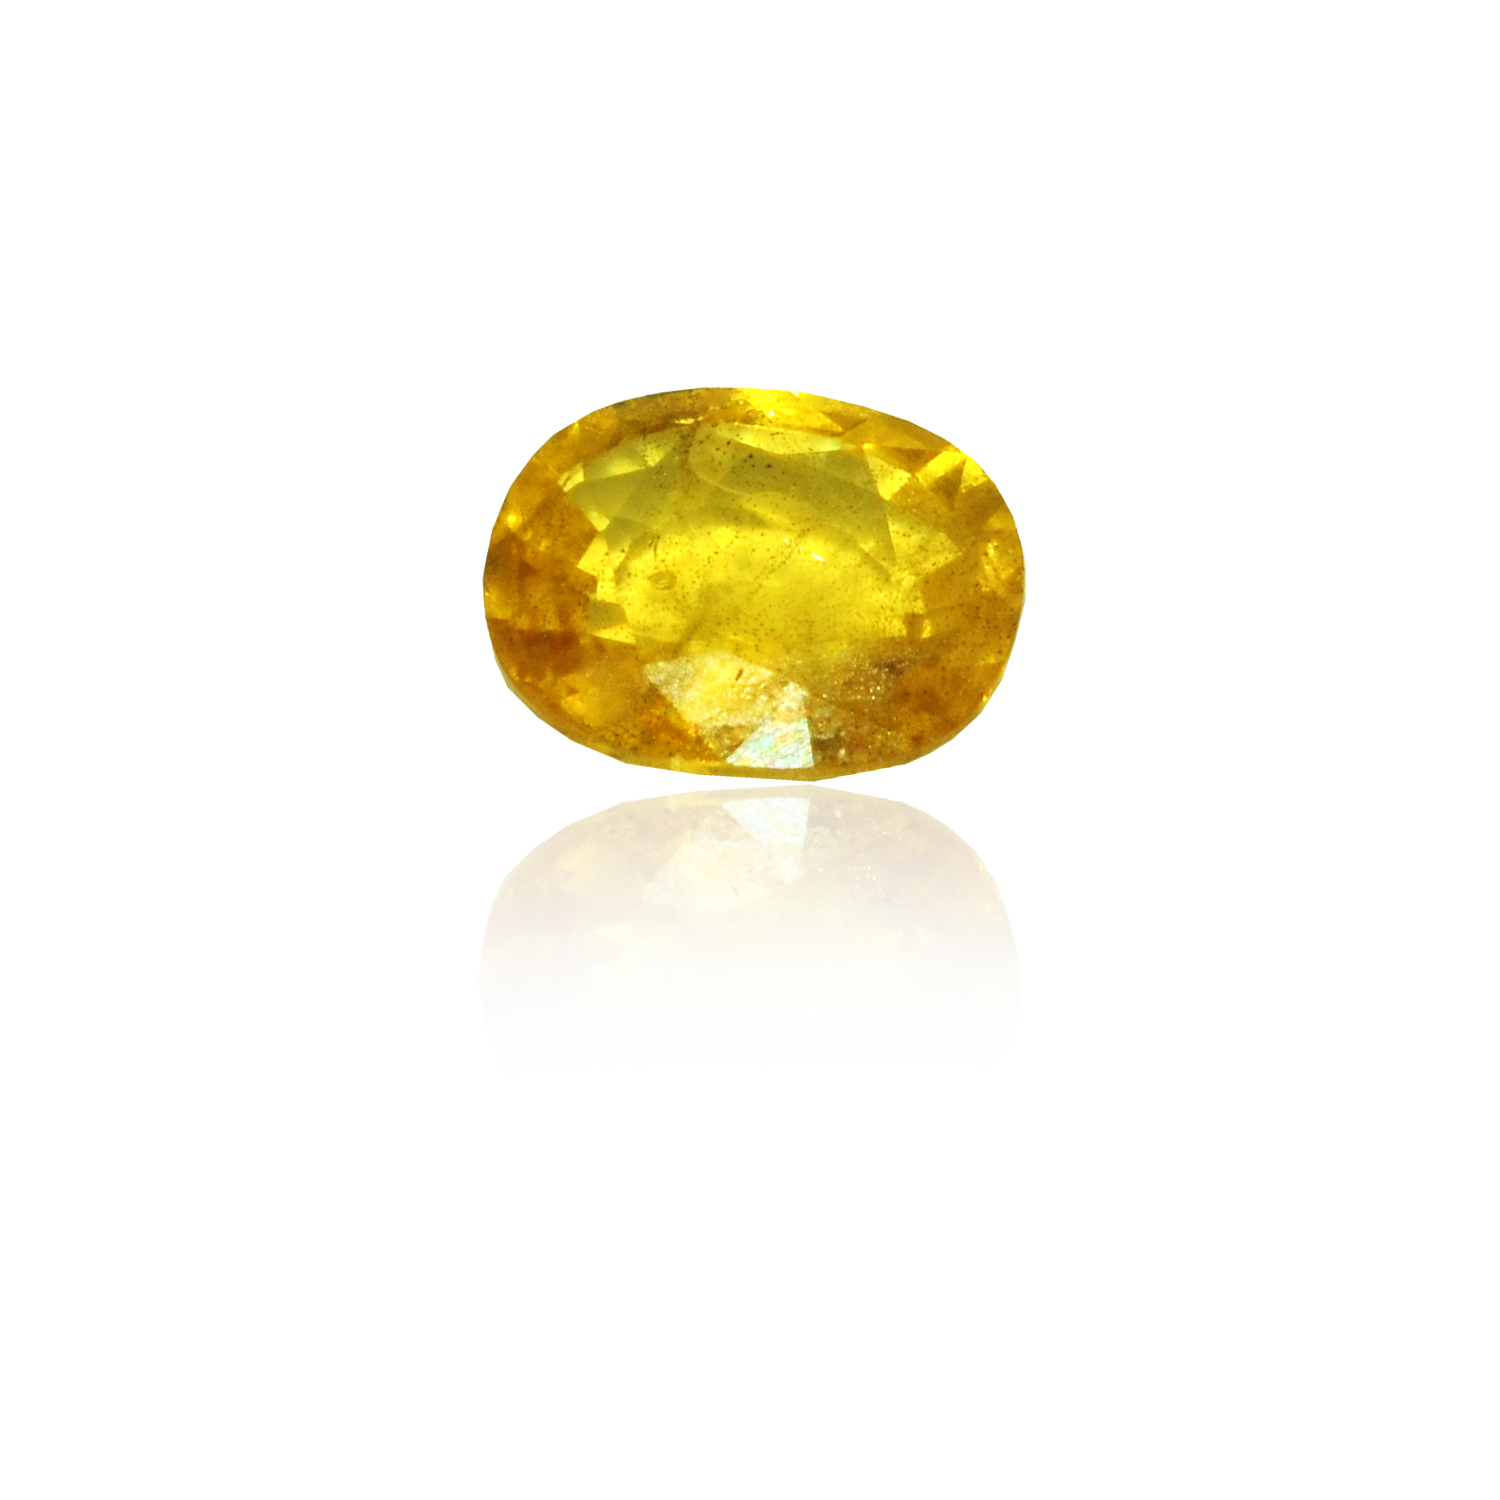 6.31 CARAT, OVAL MIXED CUT NATURAL YELLOW SAPPHIRE